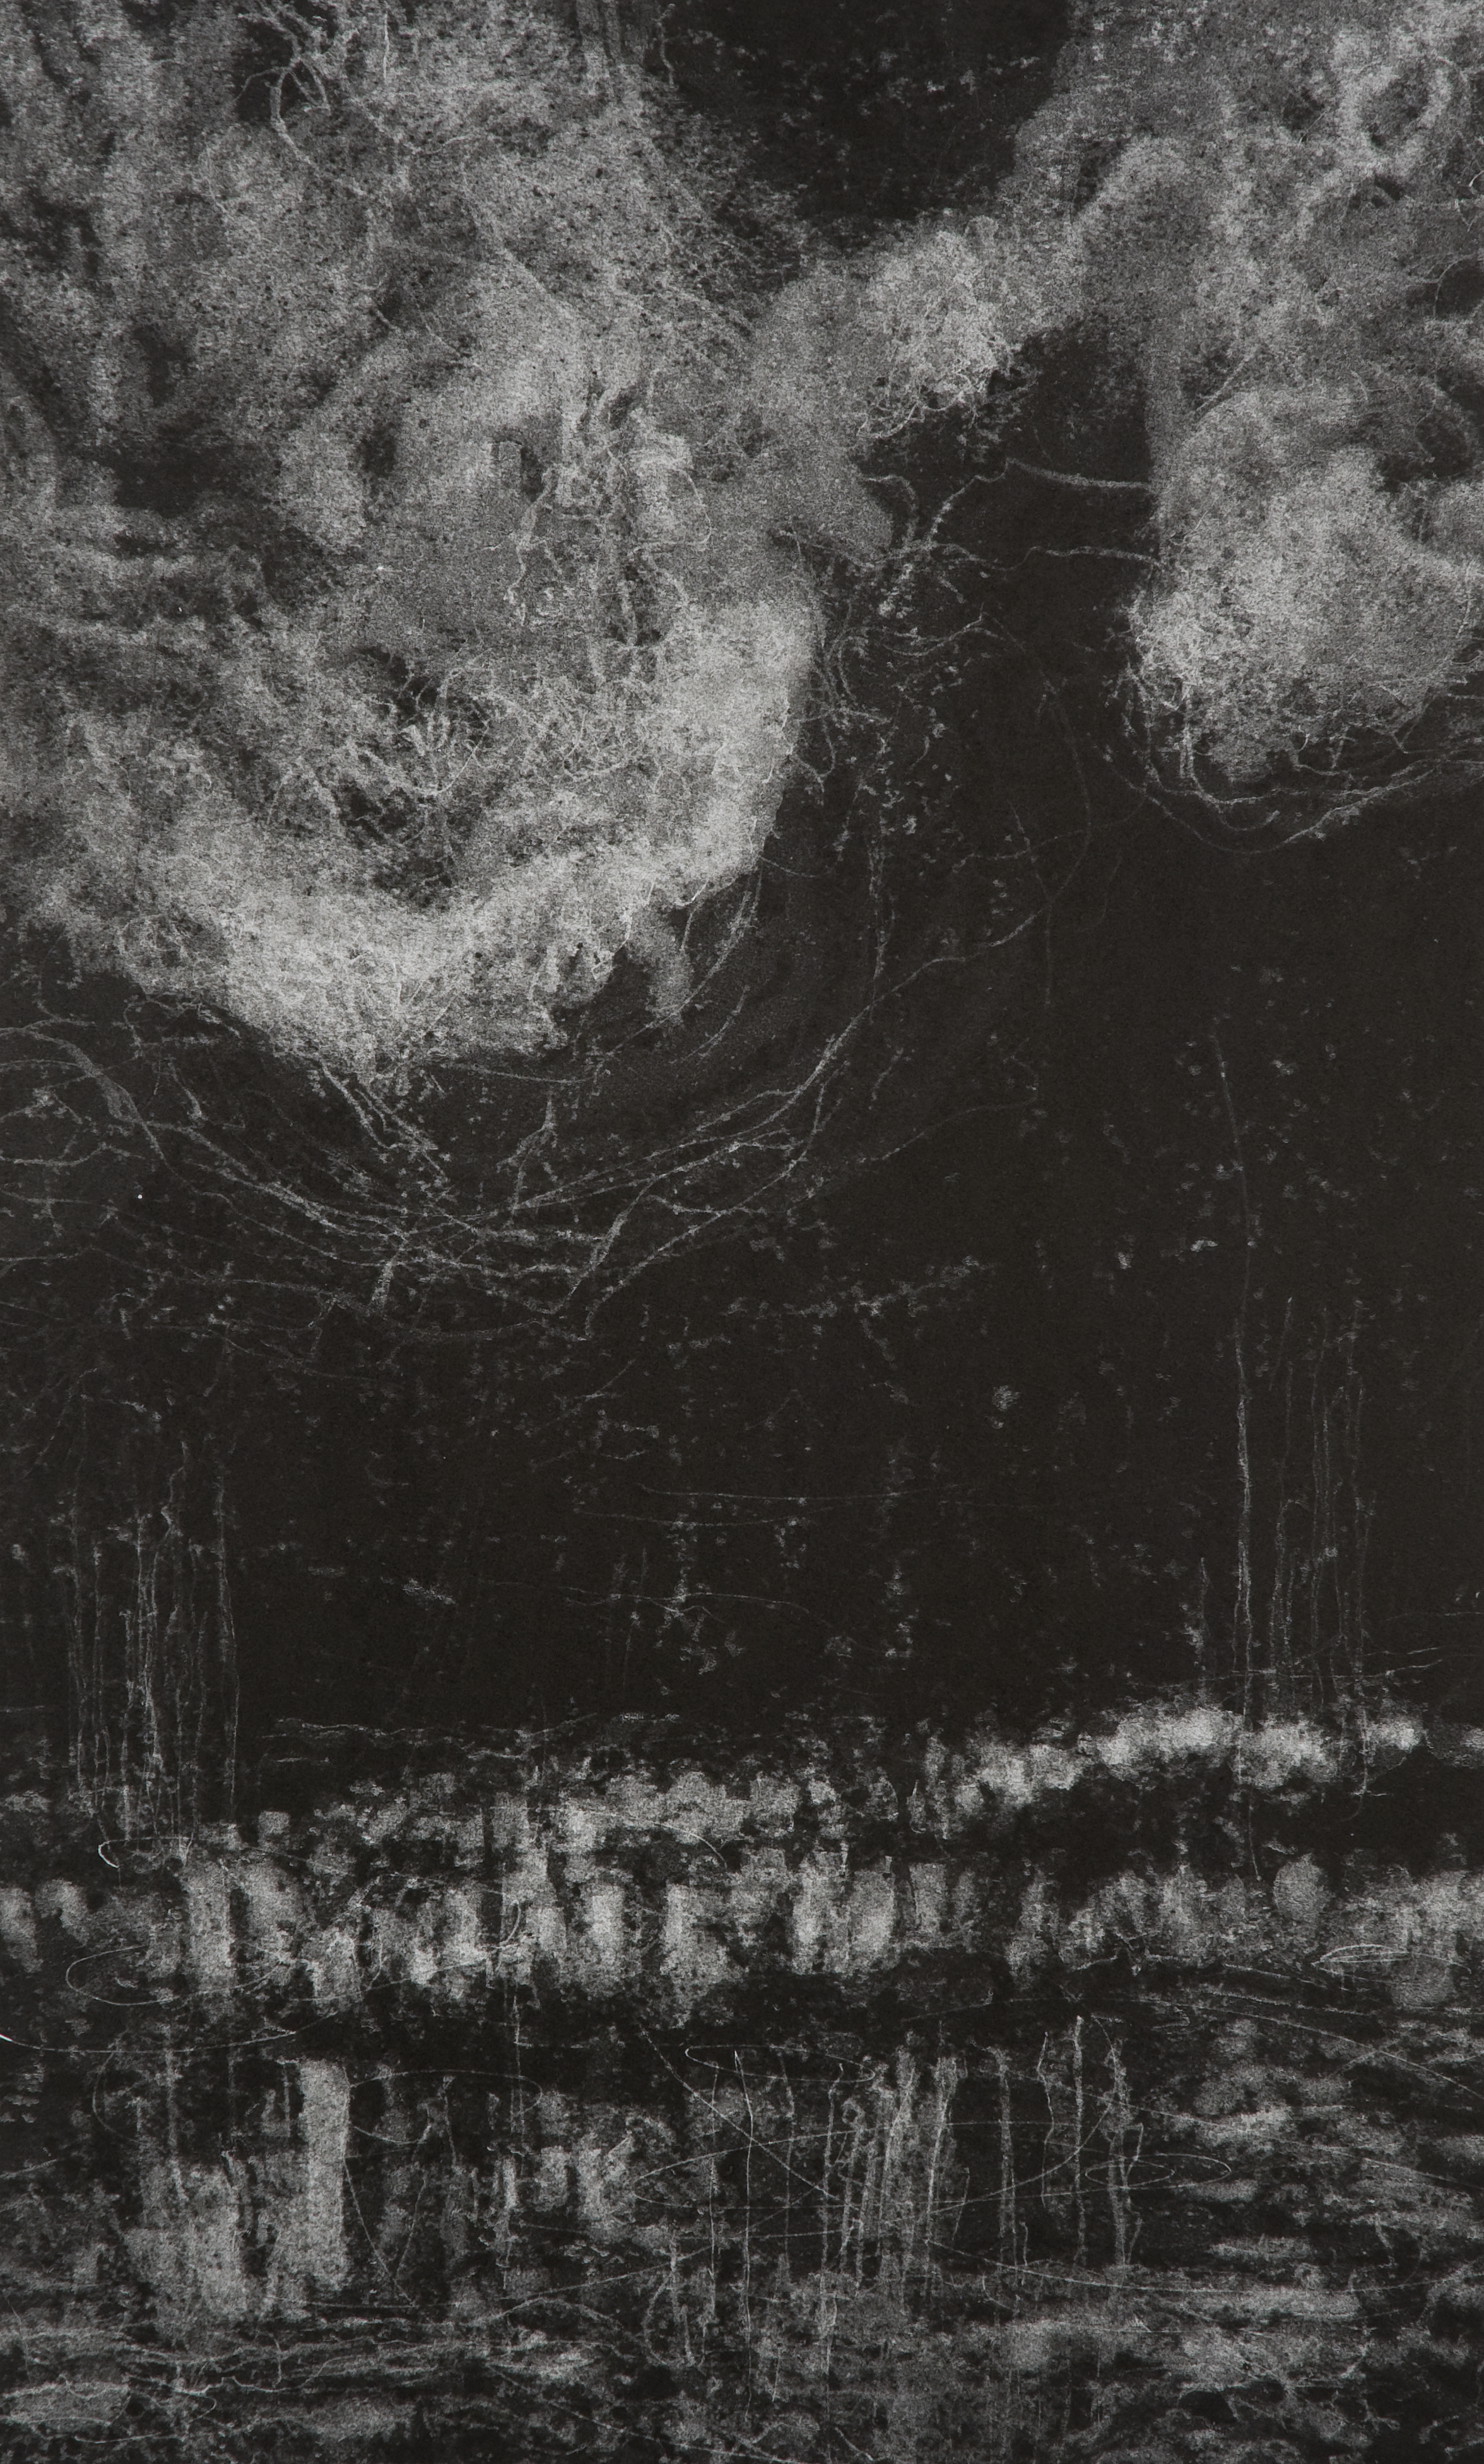 Hilda Shen,  Illumined Triptych (left),  2010. Set of 3 unique monotypes, 15 x 25 inches, ©Hilda Shen, courtesy of Fou Gallery